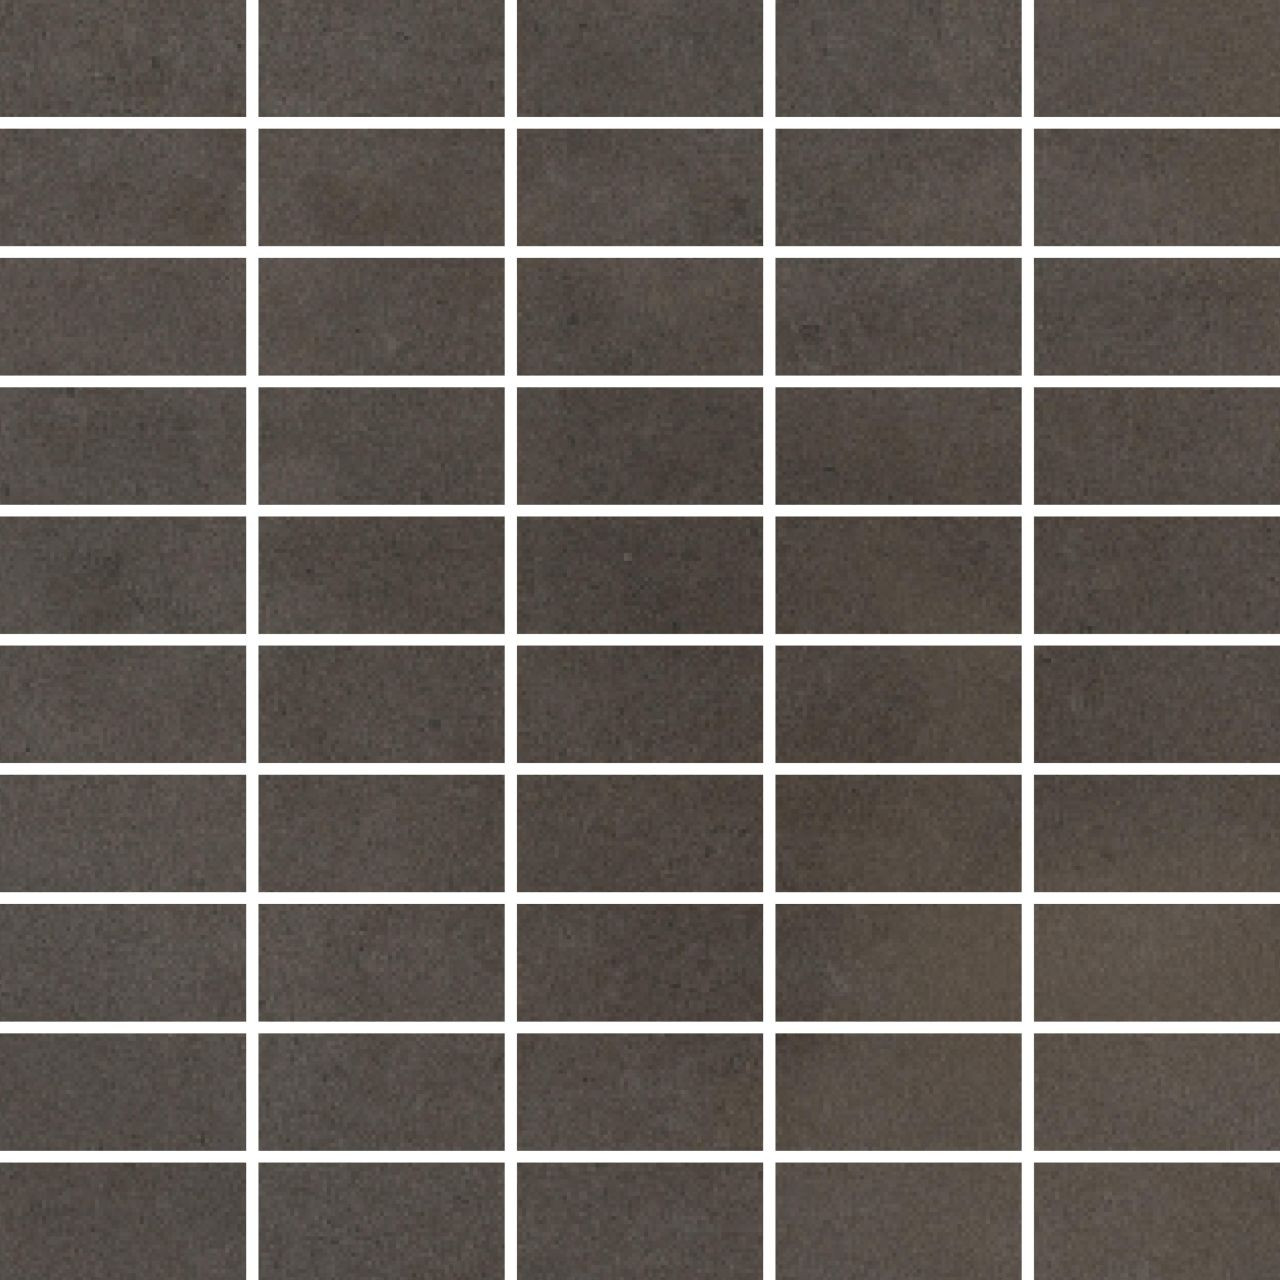 RAK Surface Dark Greige Matt 30cm x 30cm Sheet 2.7cm x 5.8cm Bricks Porcelain Mosaic Tile - AM-GZSUR-DGE.RT3/6